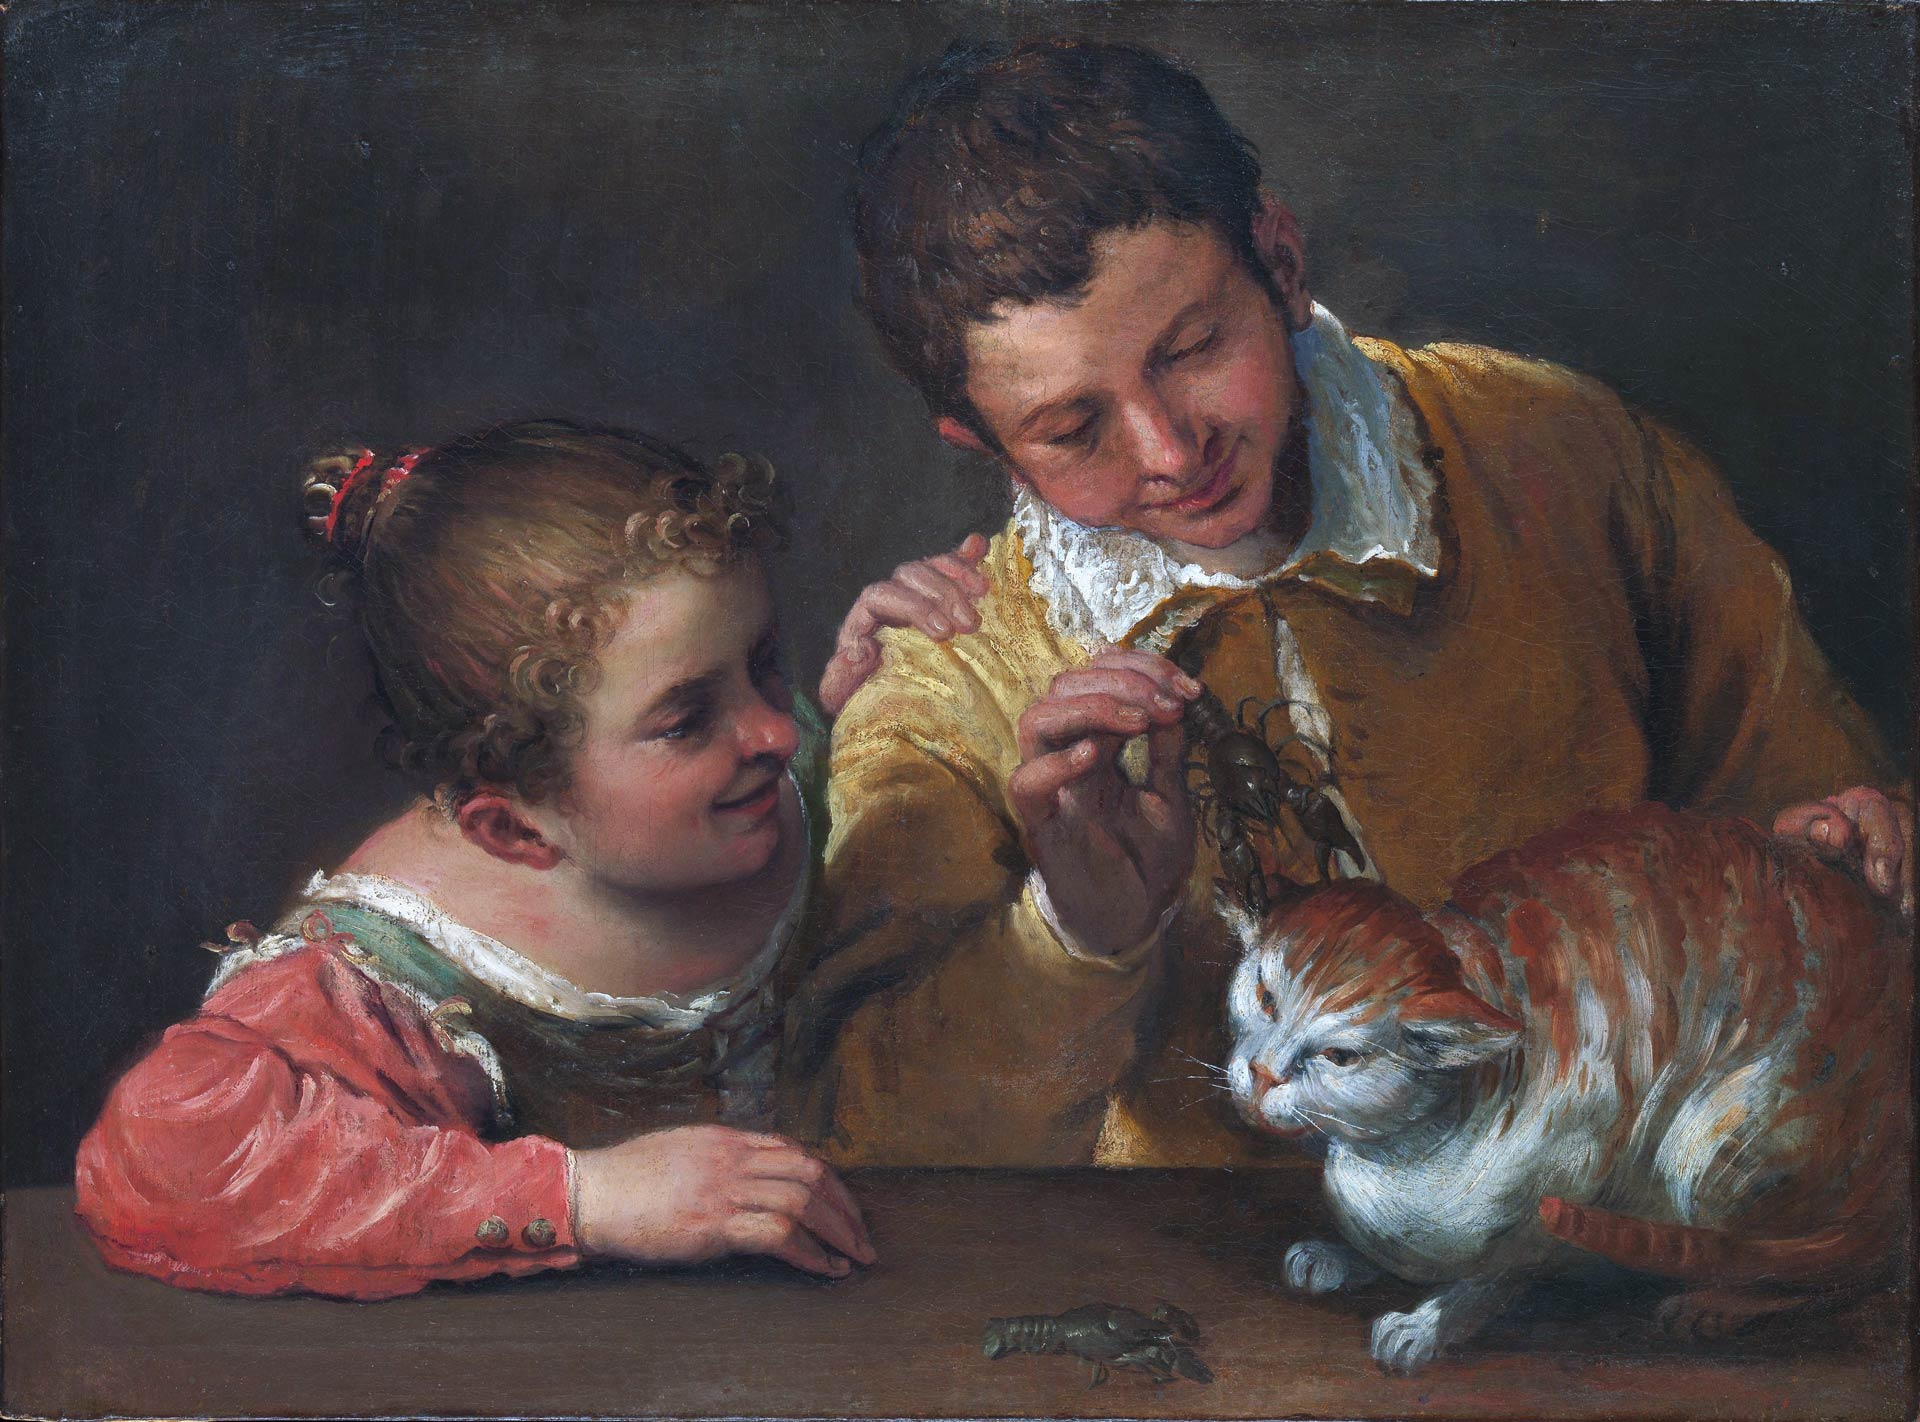 Annibale Carracci, Two Children Teasing a Cat